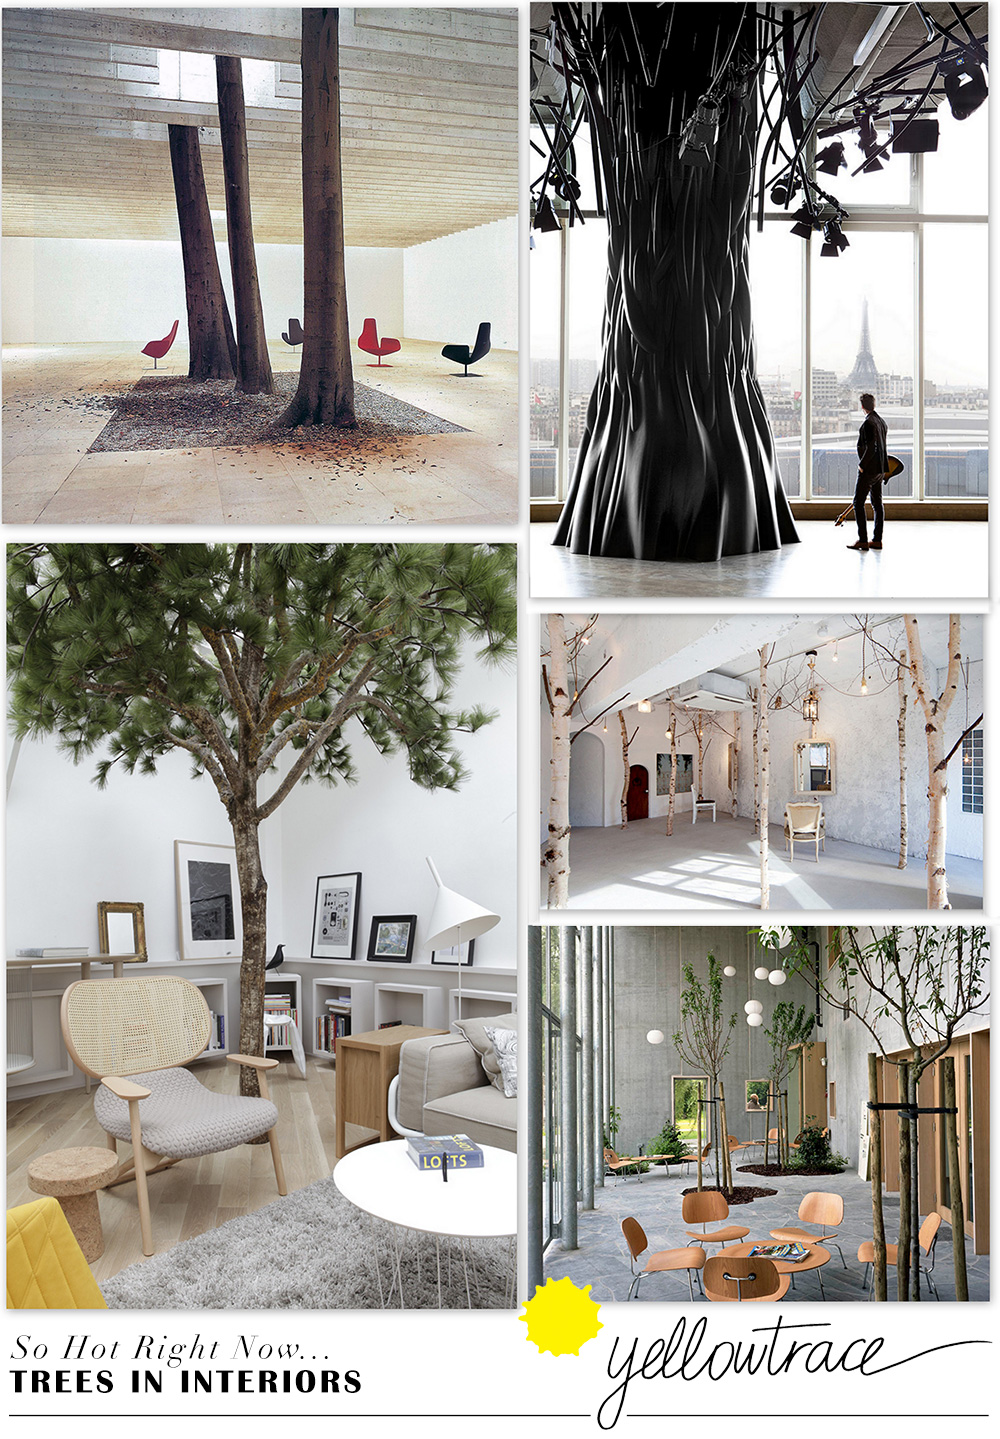 So Hot Right Now... Trees in Interiors | Curated by Yellowtrace.